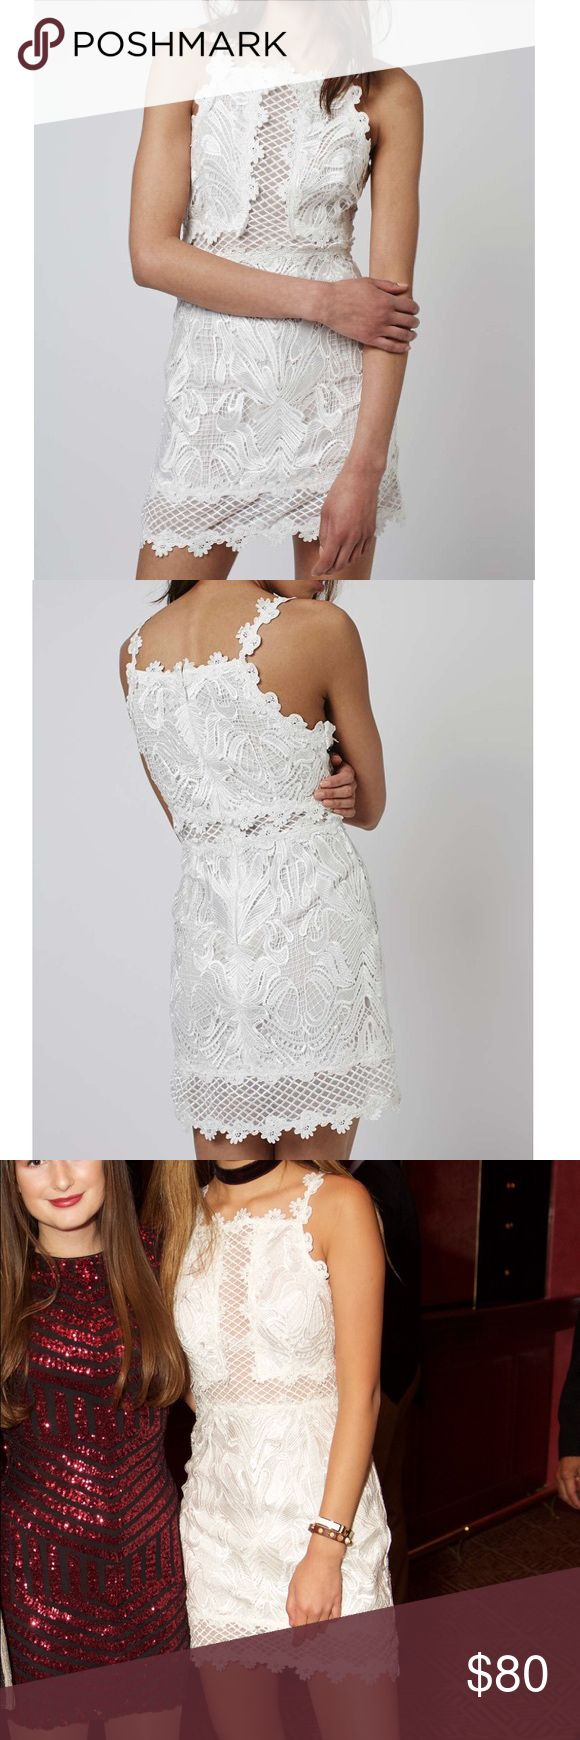 [topshop] white lace detailed bodycon dress Insanely detailed dress by Topshop boutique. Honestly looks so expensive, worn once to a party and got so many compliments. The most beautiful white, lace bodycon dress! You will be sure to stand out in this number…Excellent condition, like new. Add a touch of elegance to your party wardrobe with this beautiful lace bodycon dress. With an intricate all-over shiny lace detail throughout, there is also a cross pattern feature. Style it with a…